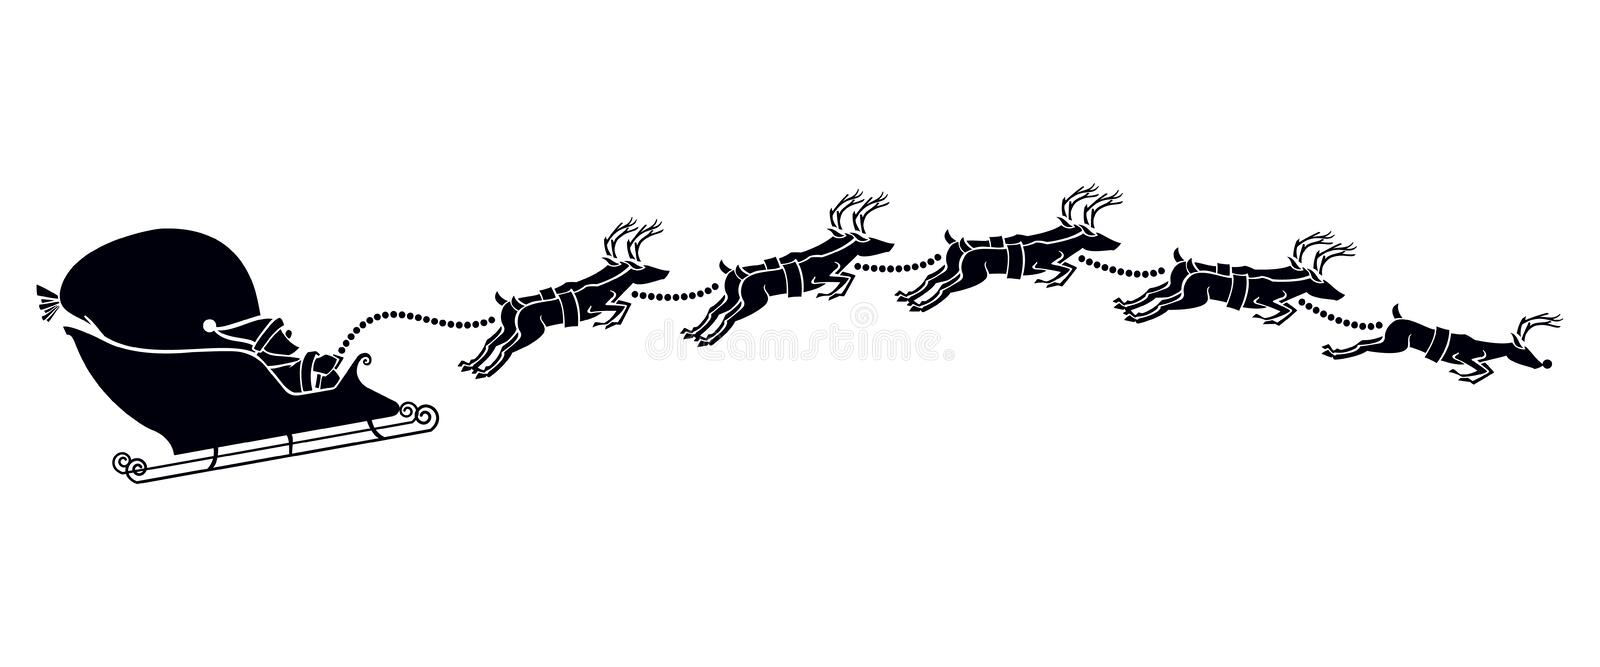 Santa's Sled Silhouette. Vector illustration of Santa Claus and his sleigh with his reindeer as a silhouette vector illustration